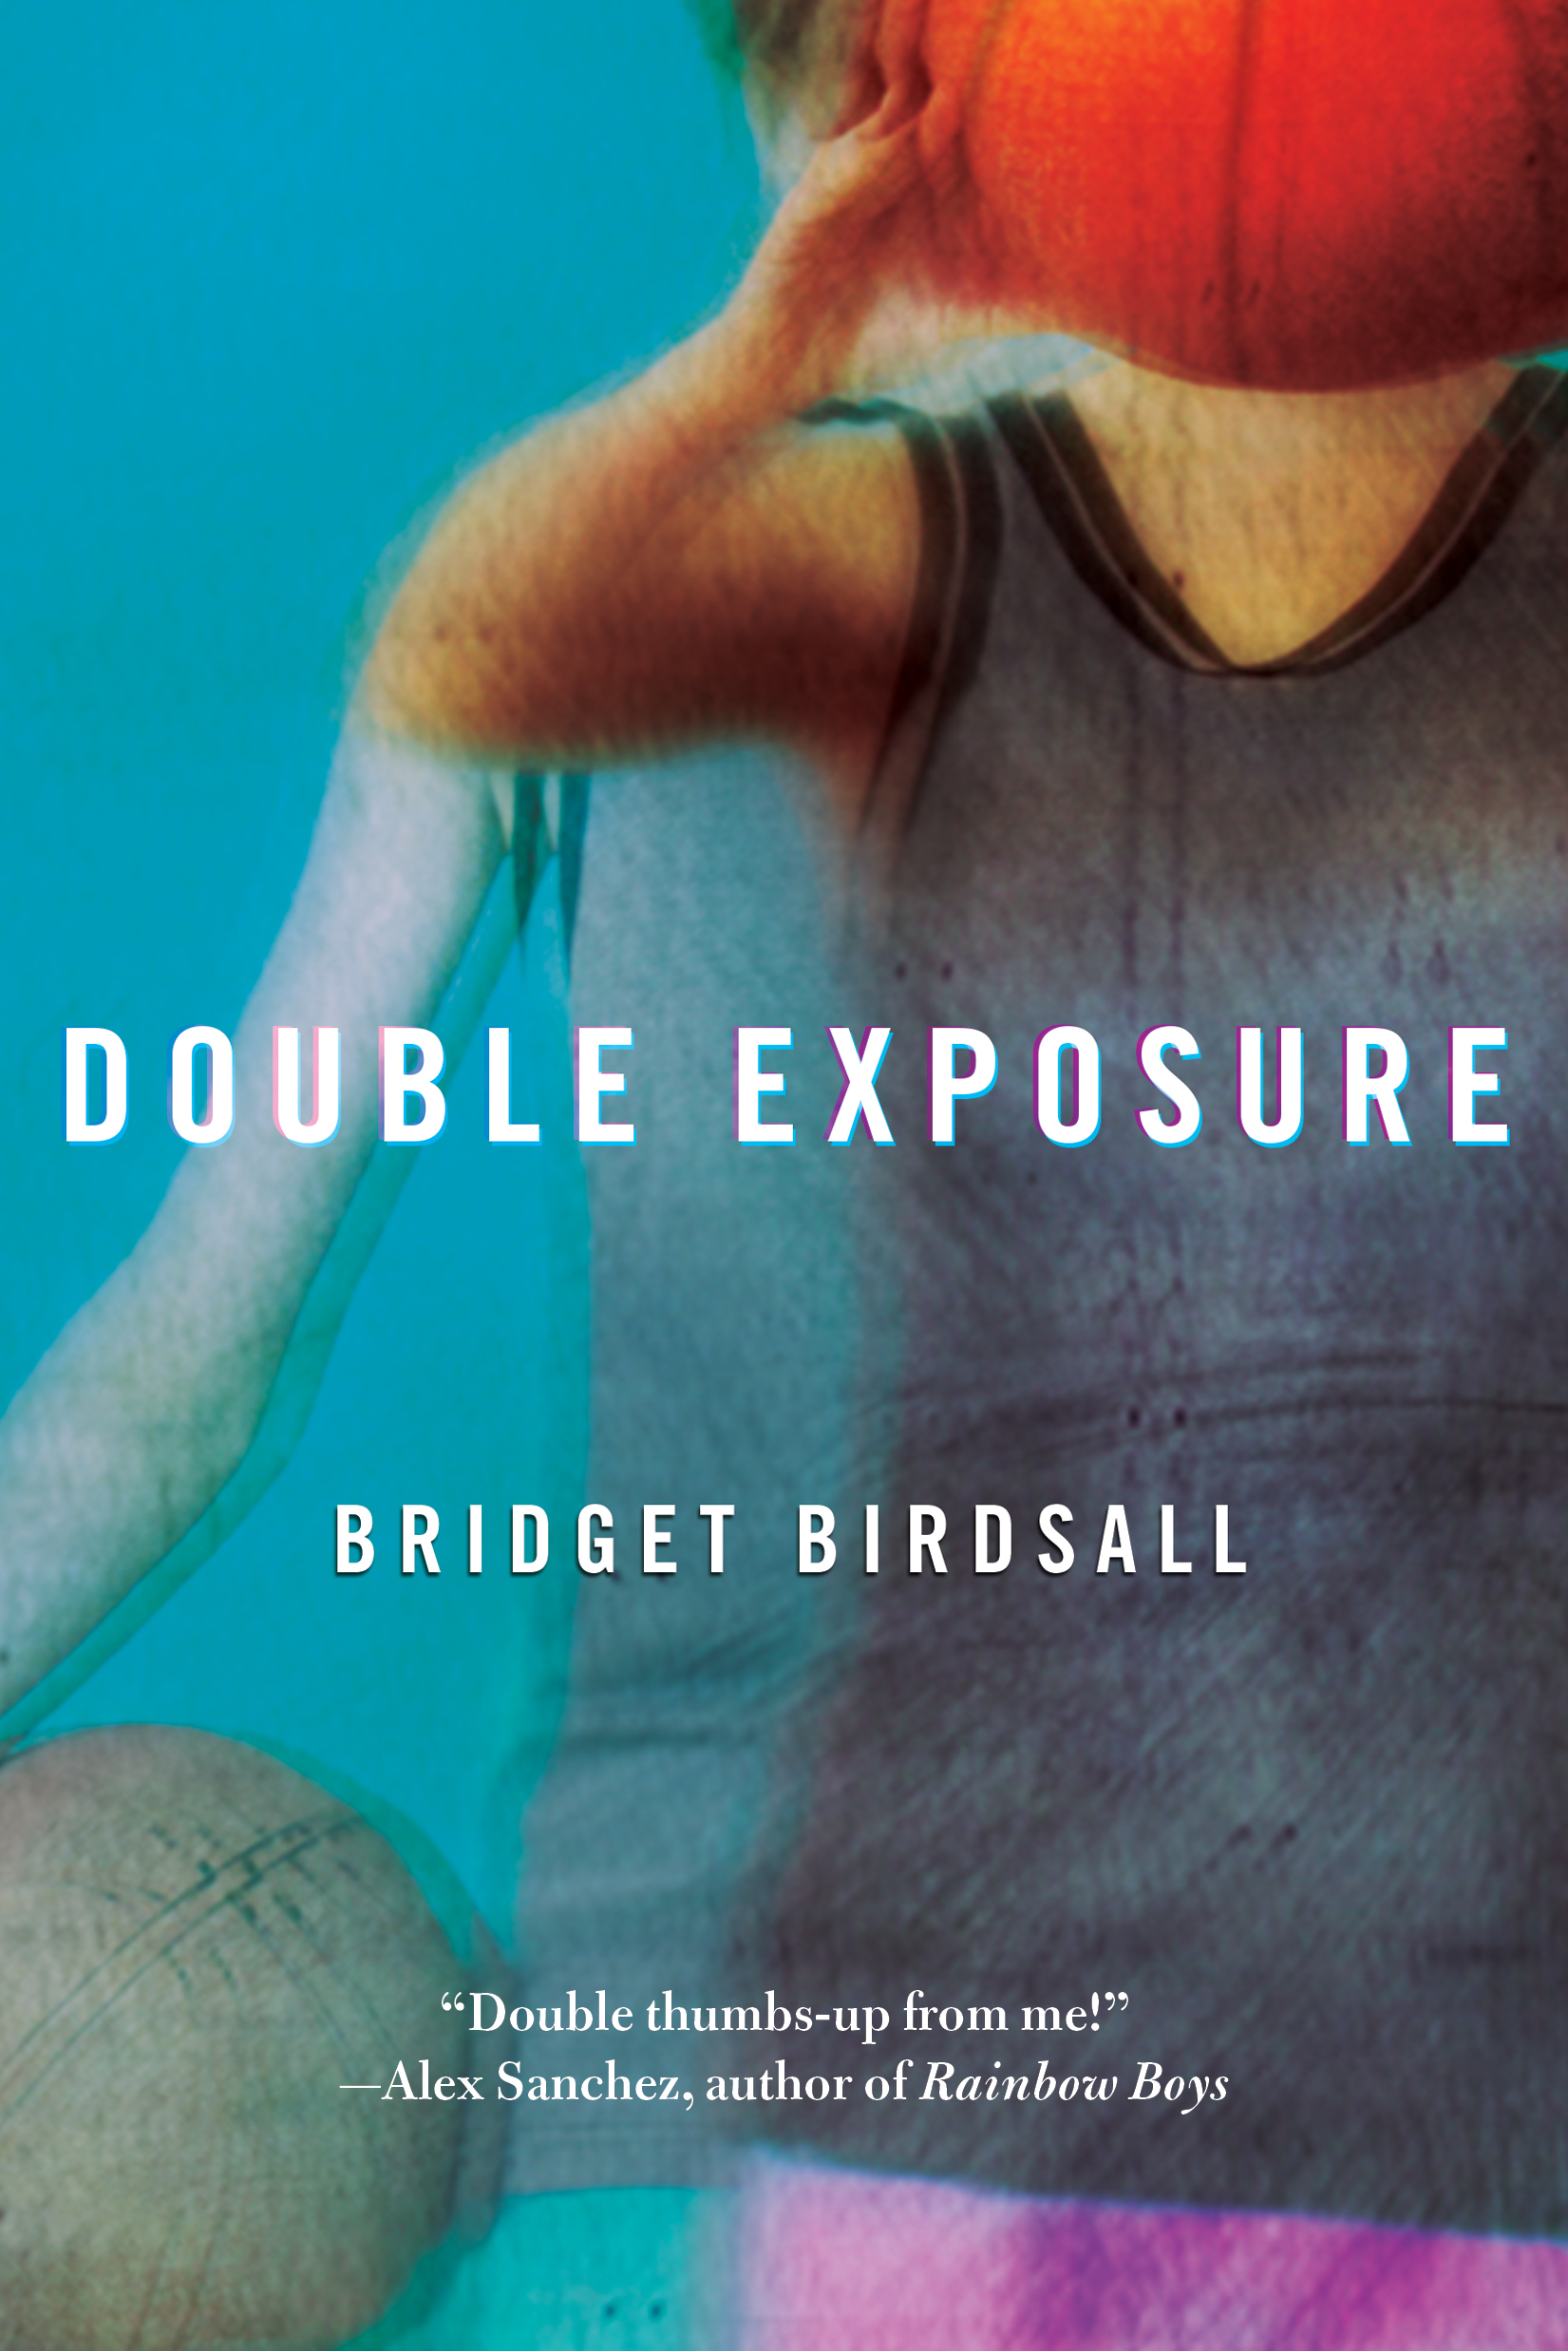 Double Exposure - A Great Young Adult Book about Intersex Teen and Anti-bullying